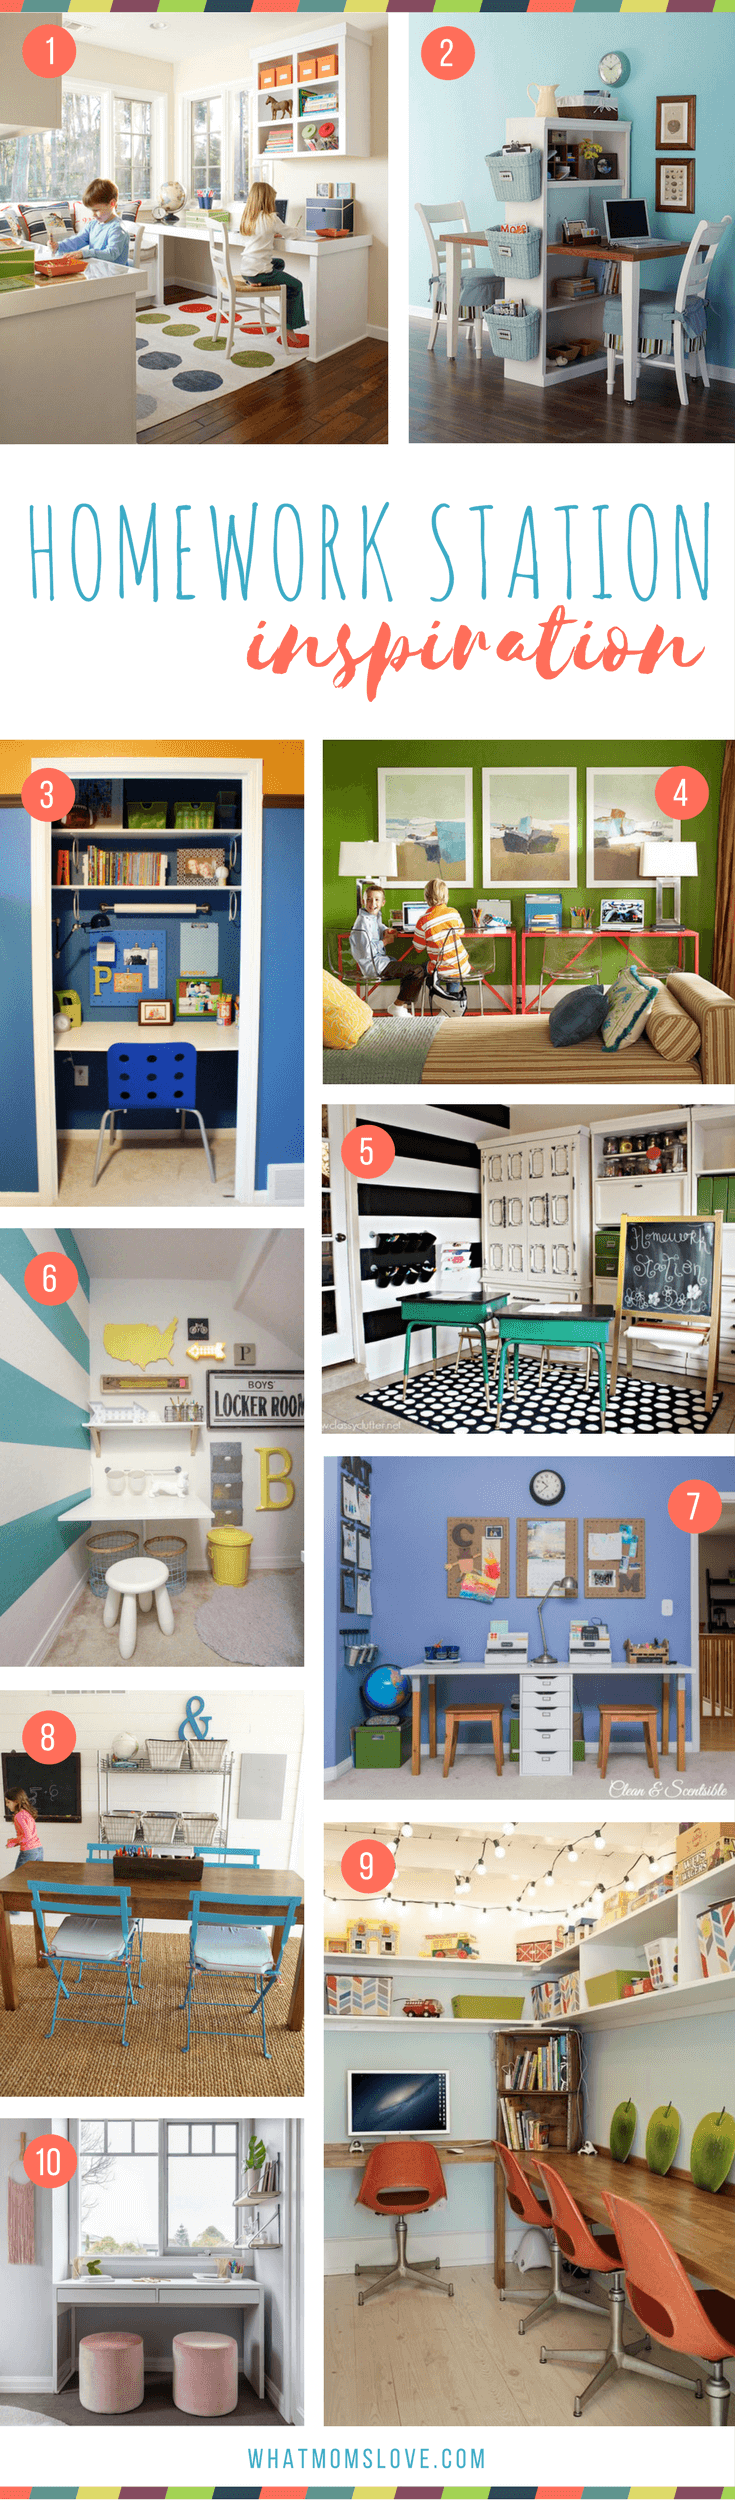 Homework Station Ideas for kids   The best organization tips for how to create a study space at home for elementary school kids to teens. Many are DIY and portable - great for small spaces!